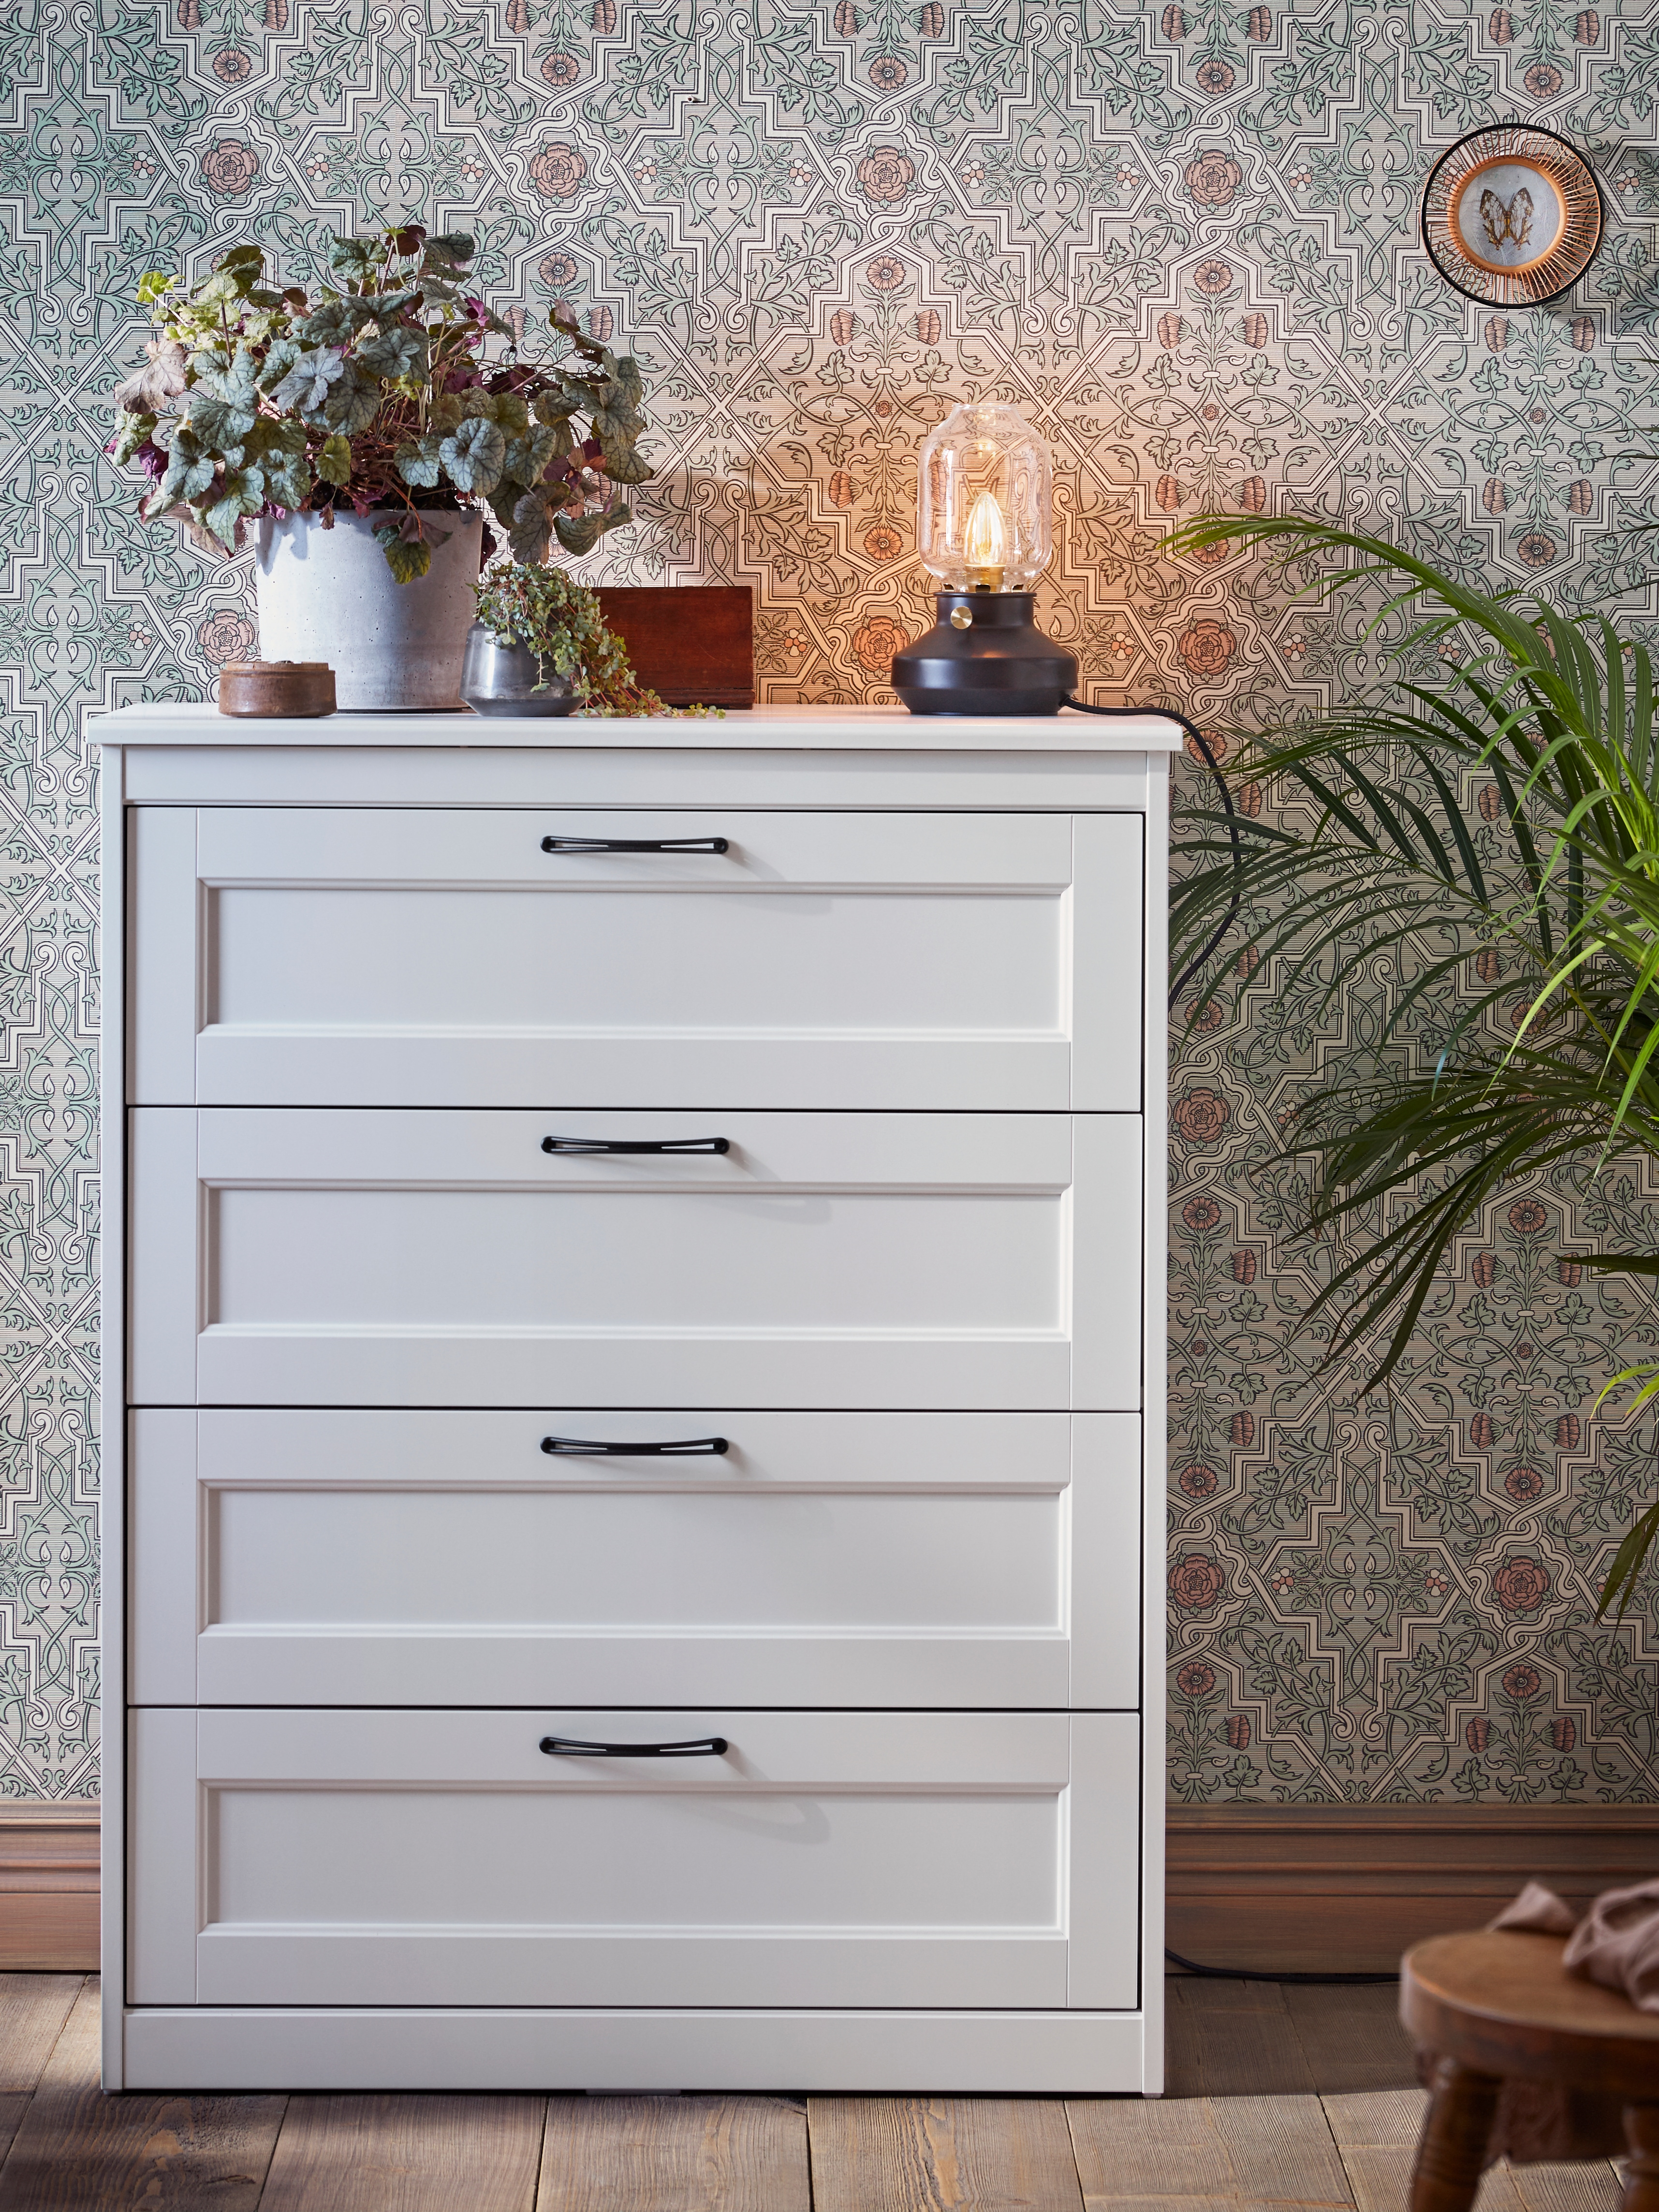 commode-4-tiroirs-SONGESAND-blanche